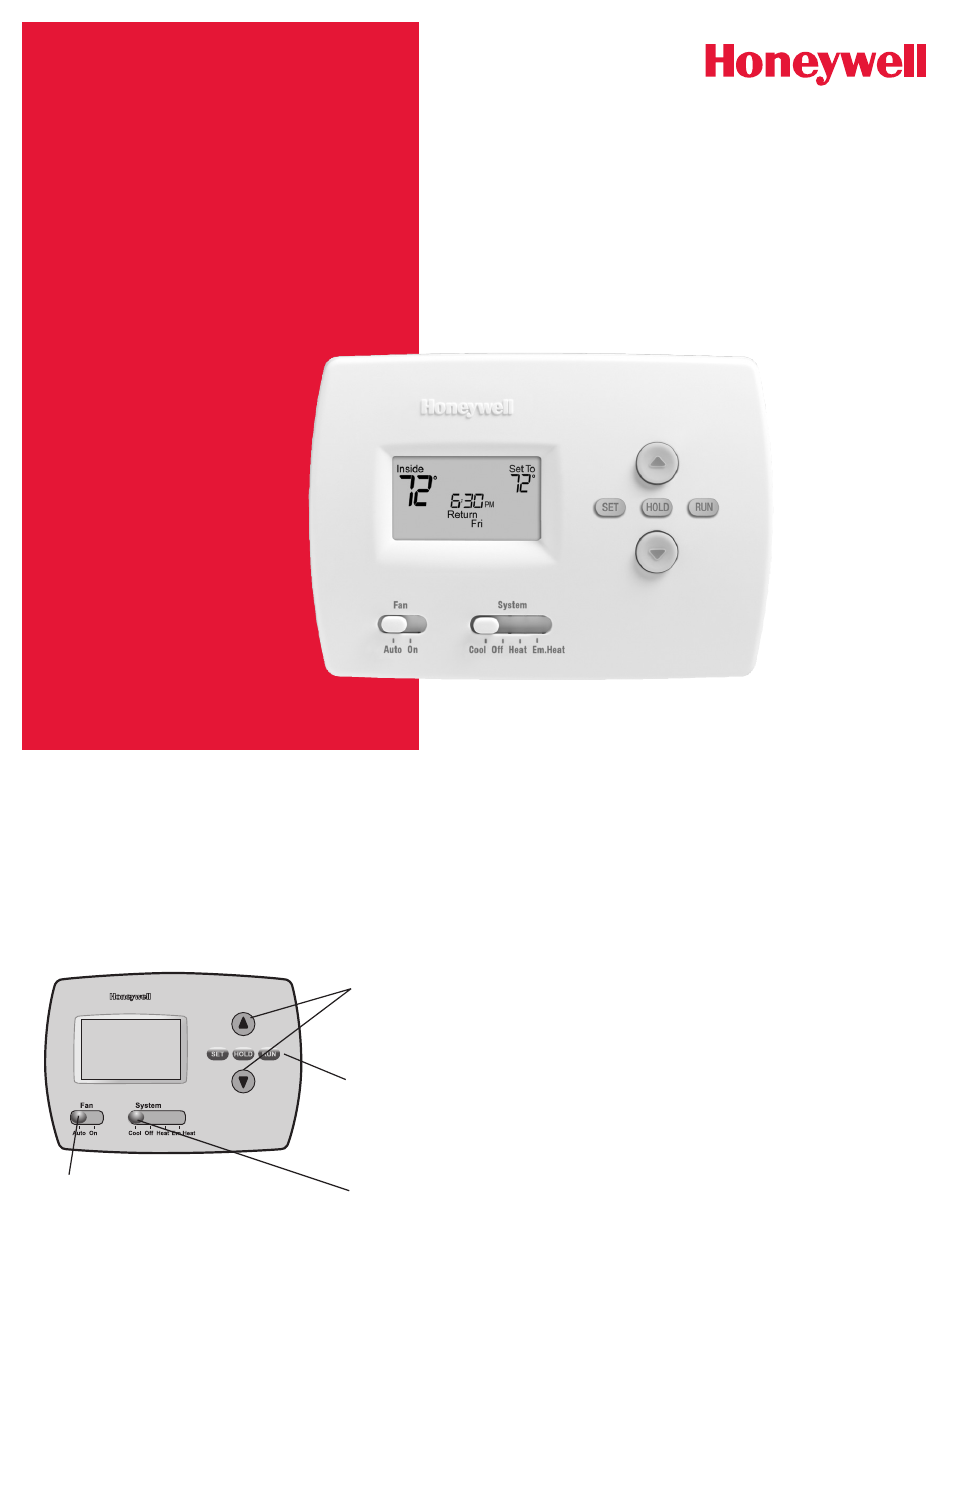 Honeywell Th4210d1005 Owners Manual Free Pdf Download 24 Pages Line Voltage Thermostat Find The Best Volt For Your Background Image